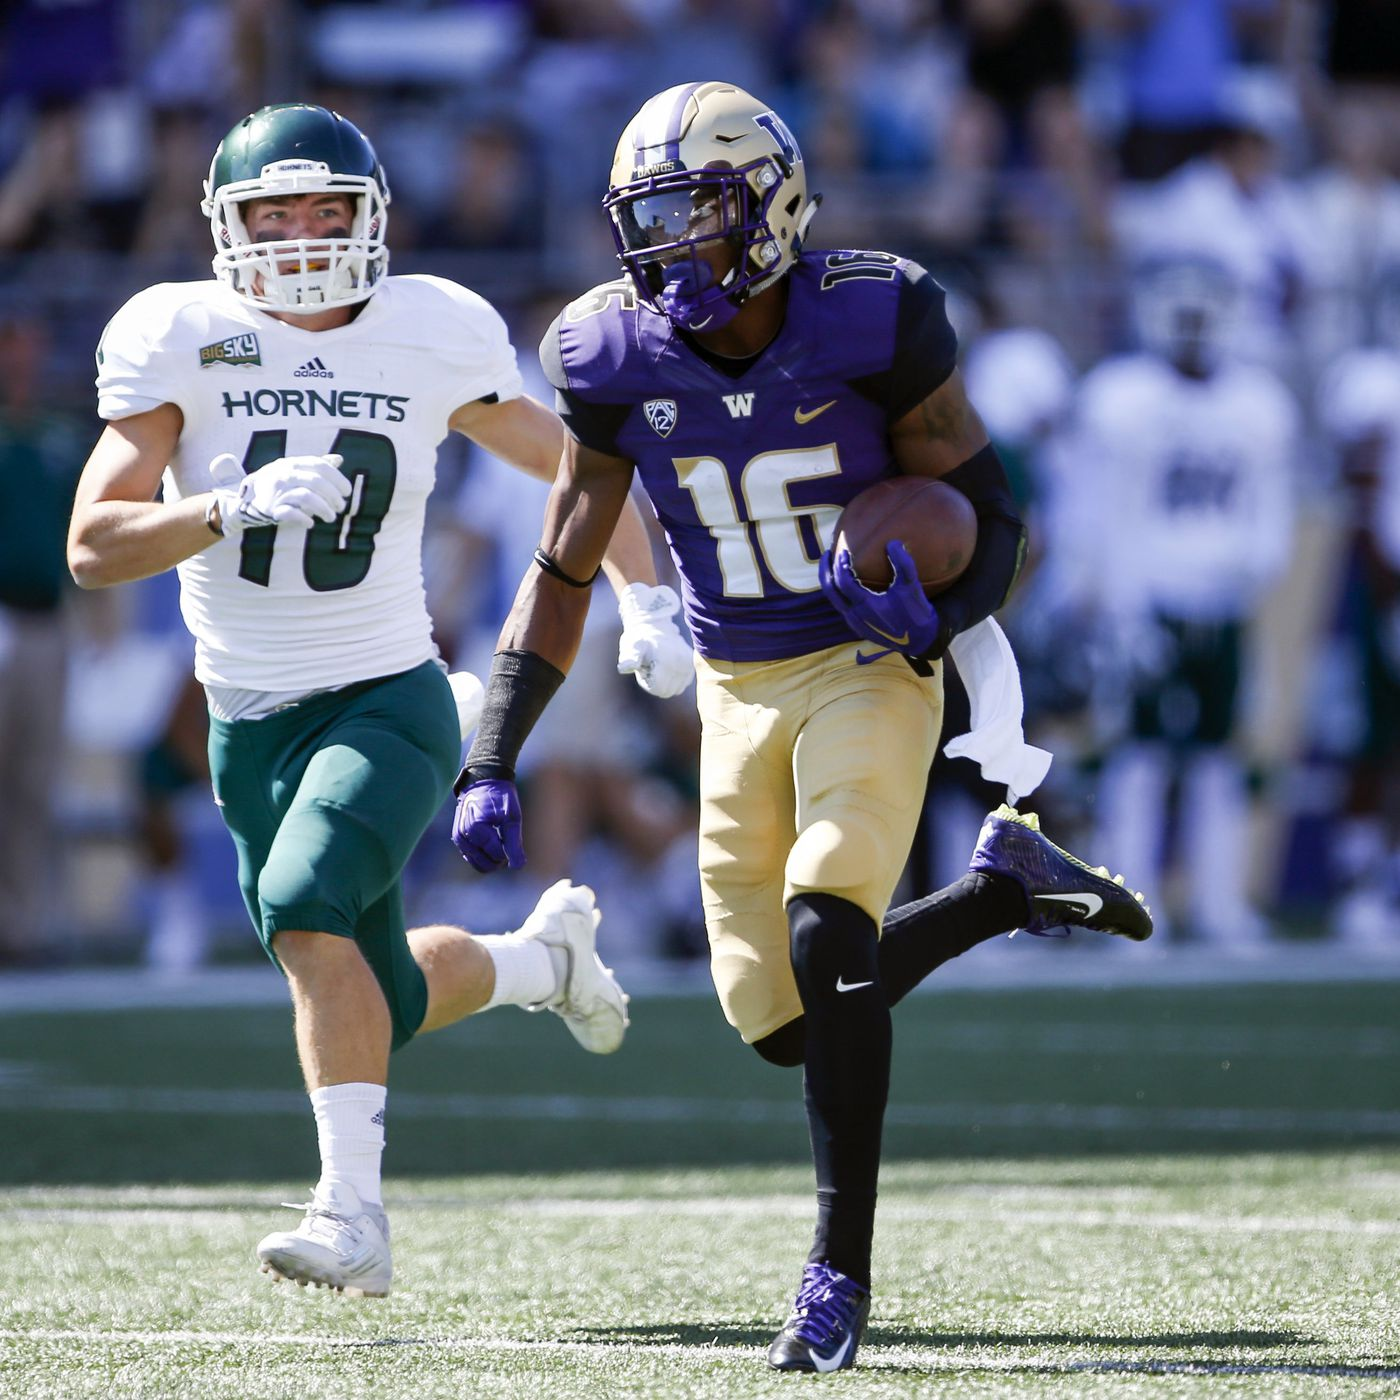 Nfl Draft 2016 Marvin Hall Signs With The Oakland Raiders Uw